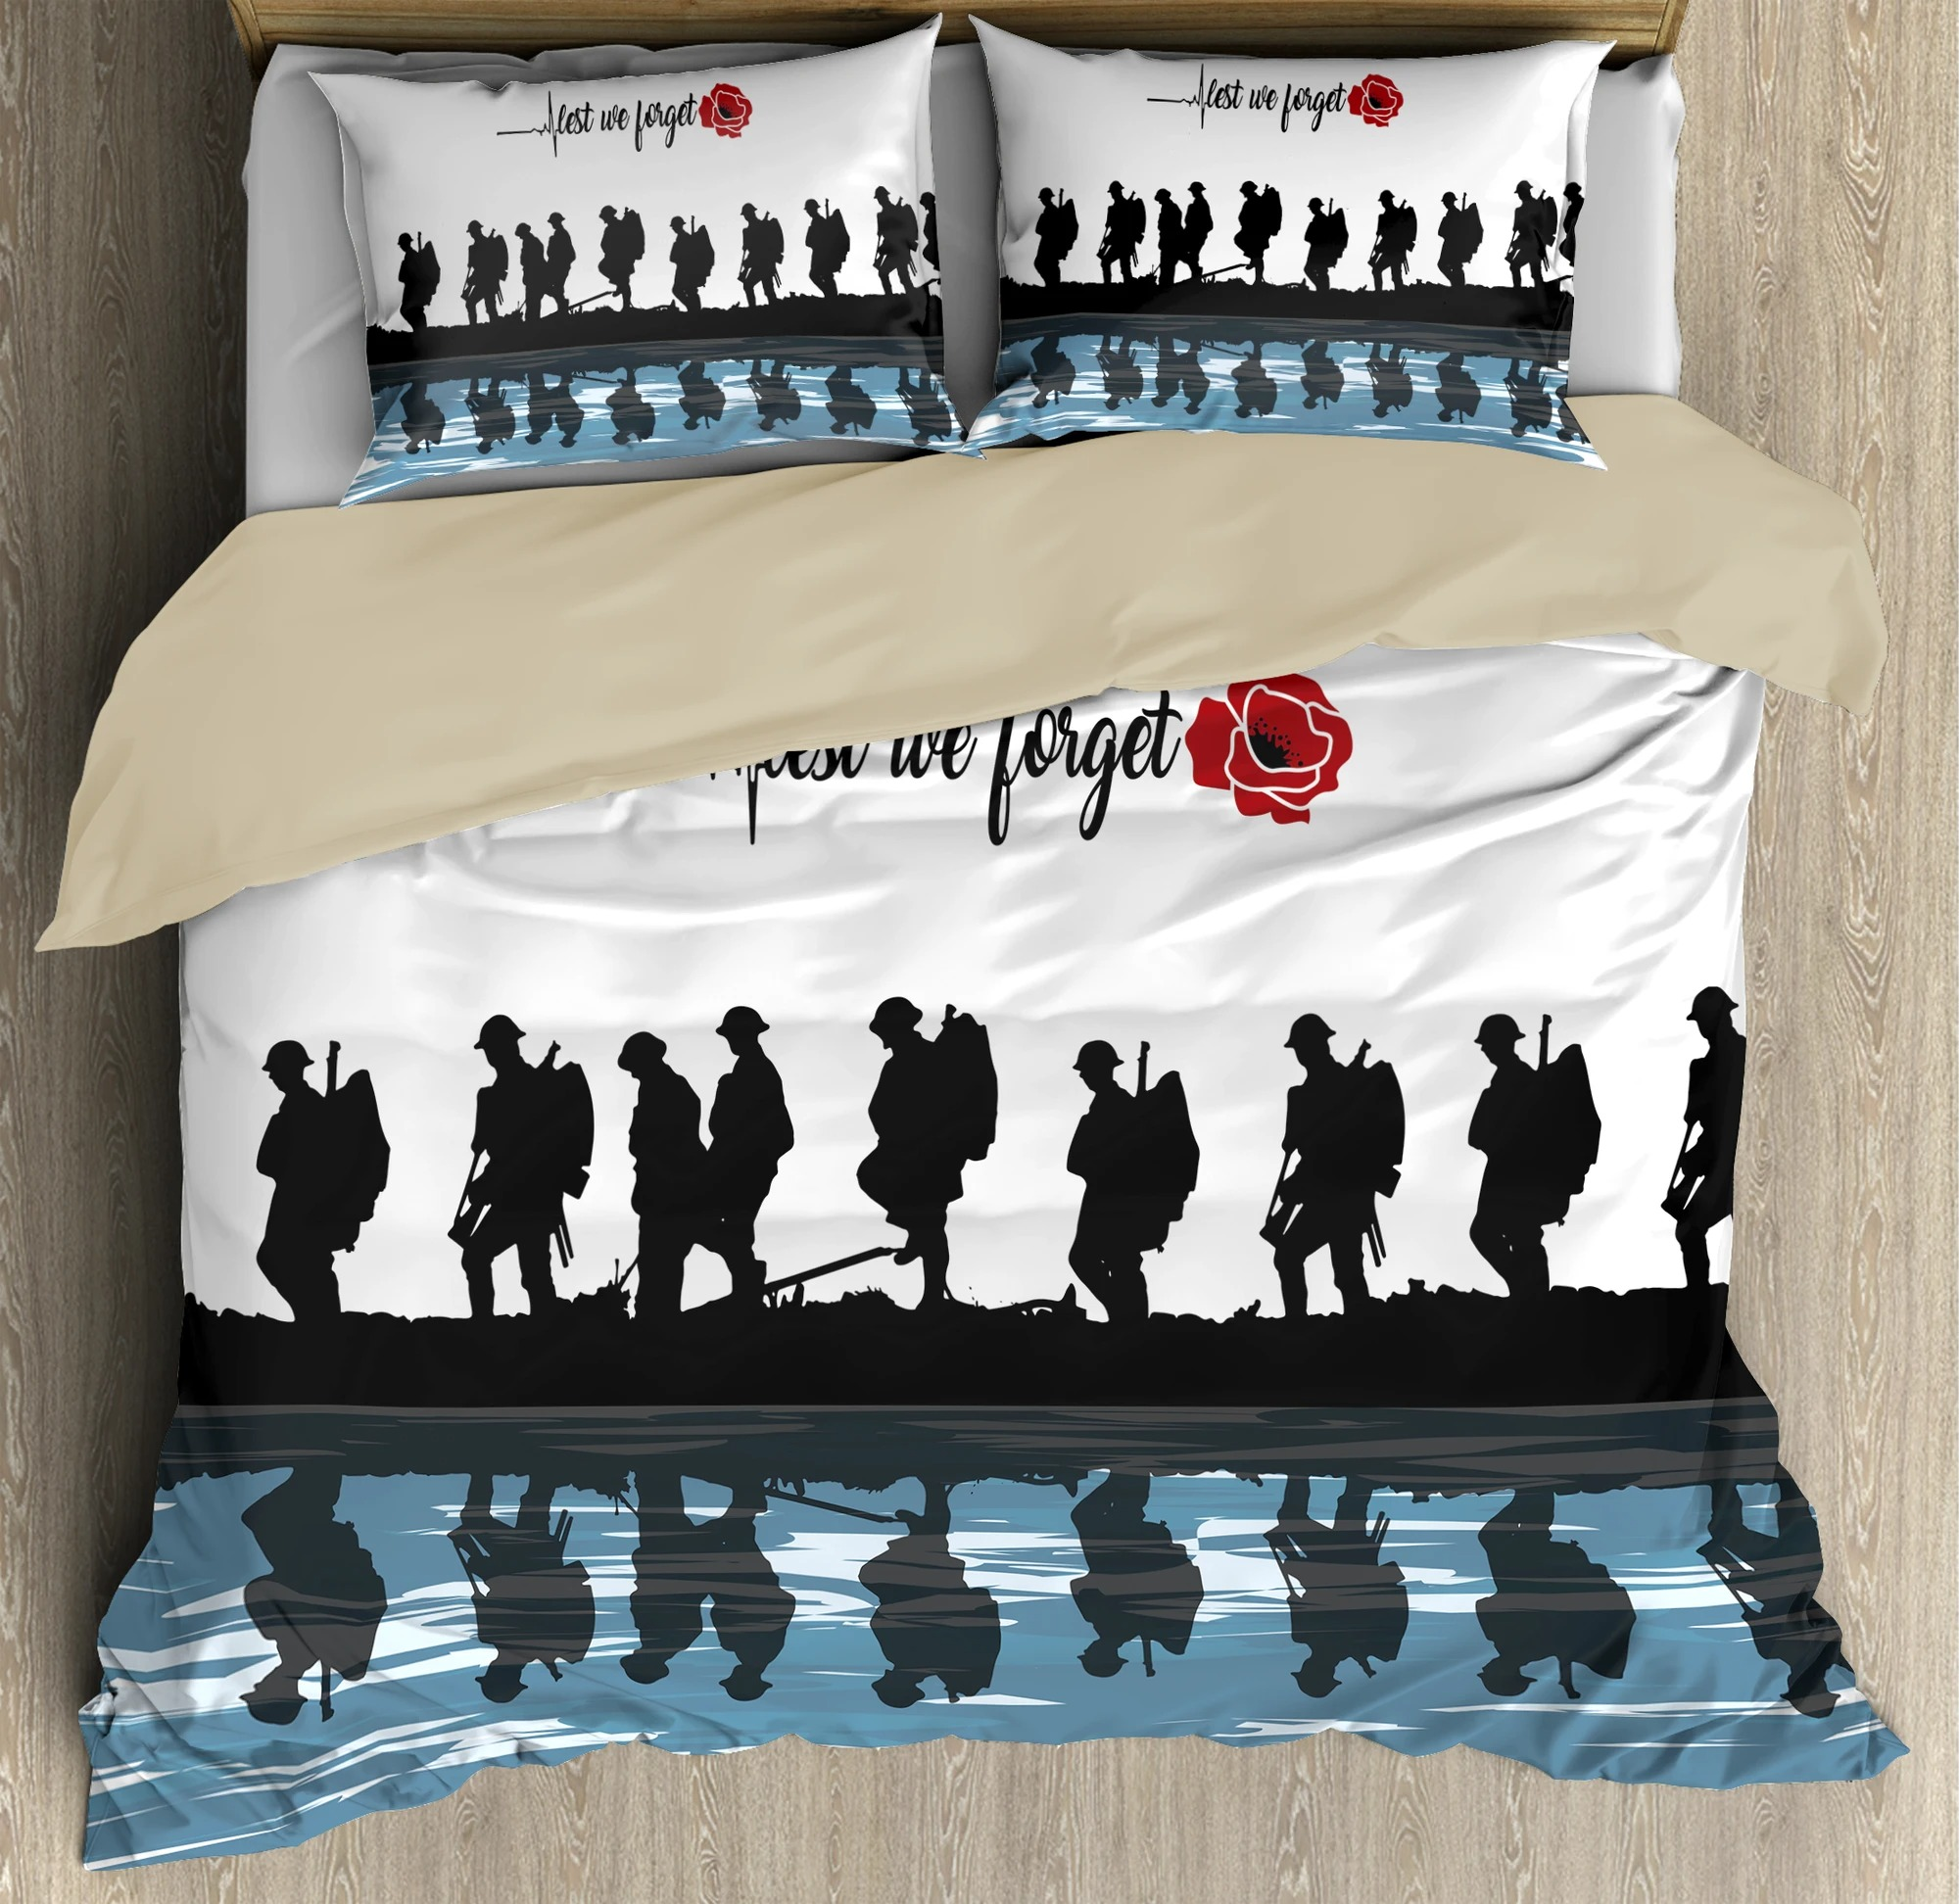 Lest we forget Honor the fallen UK Veteran 3D bedding set4